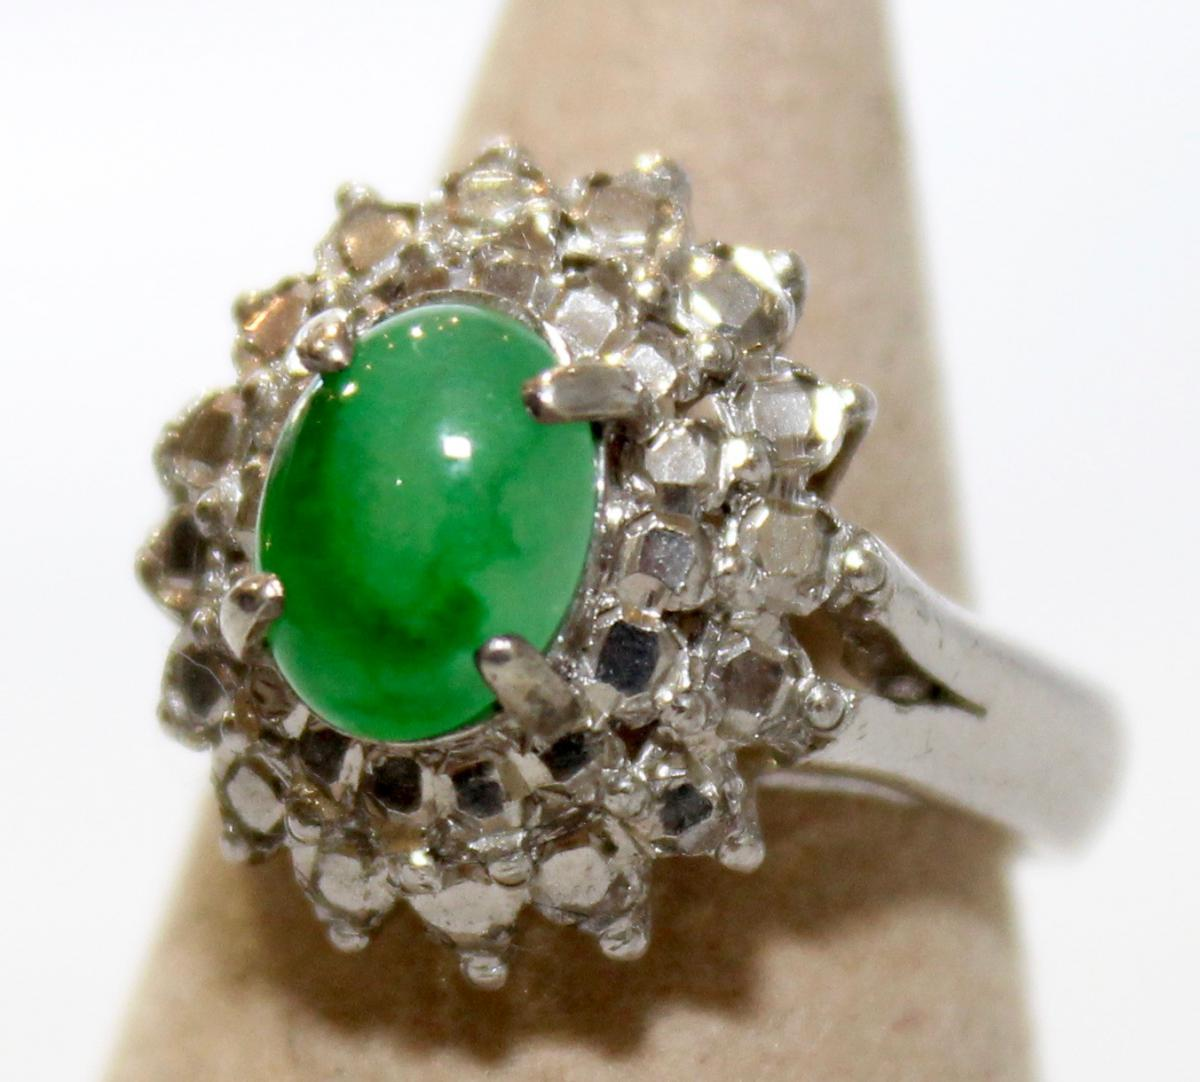 An Antique Ring In White Gold And Strass With Apple Green Jadeite Cabochon